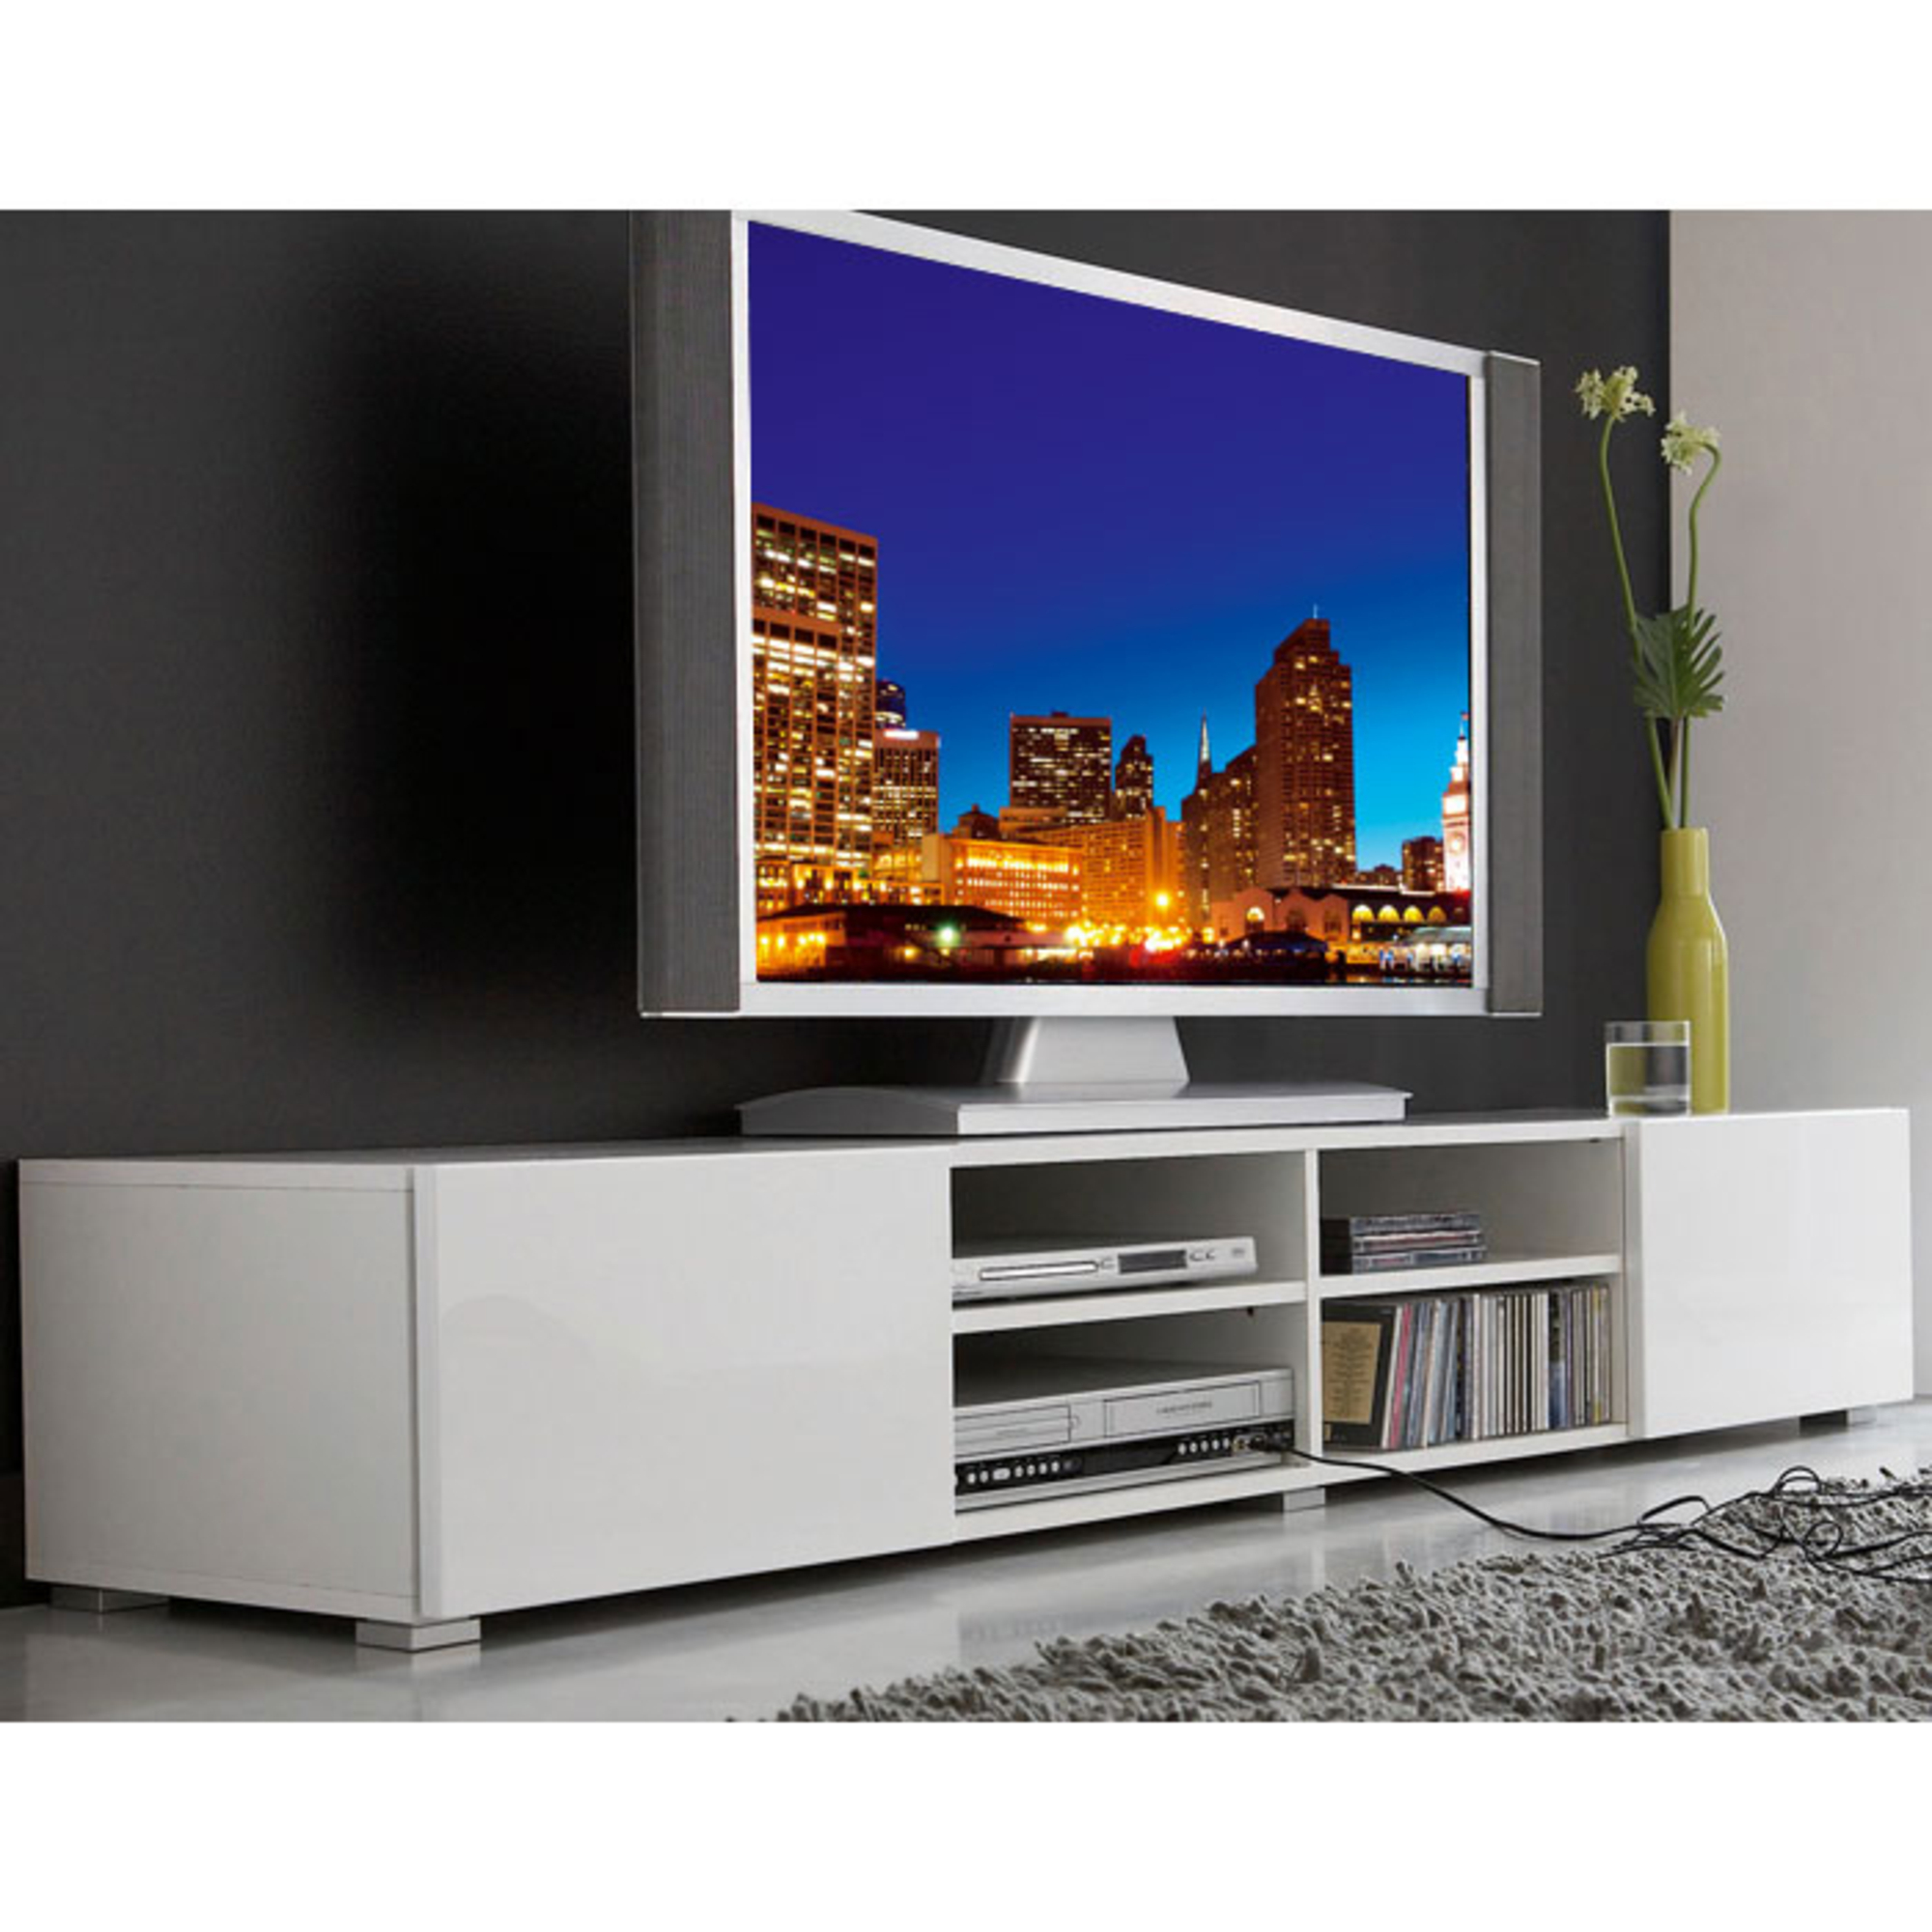 meuble tv la maison de valerie meuble tv 4 niches 2 tiroirs magnus prix 137 99 euros ventes. Black Bedroom Furniture Sets. Home Design Ideas